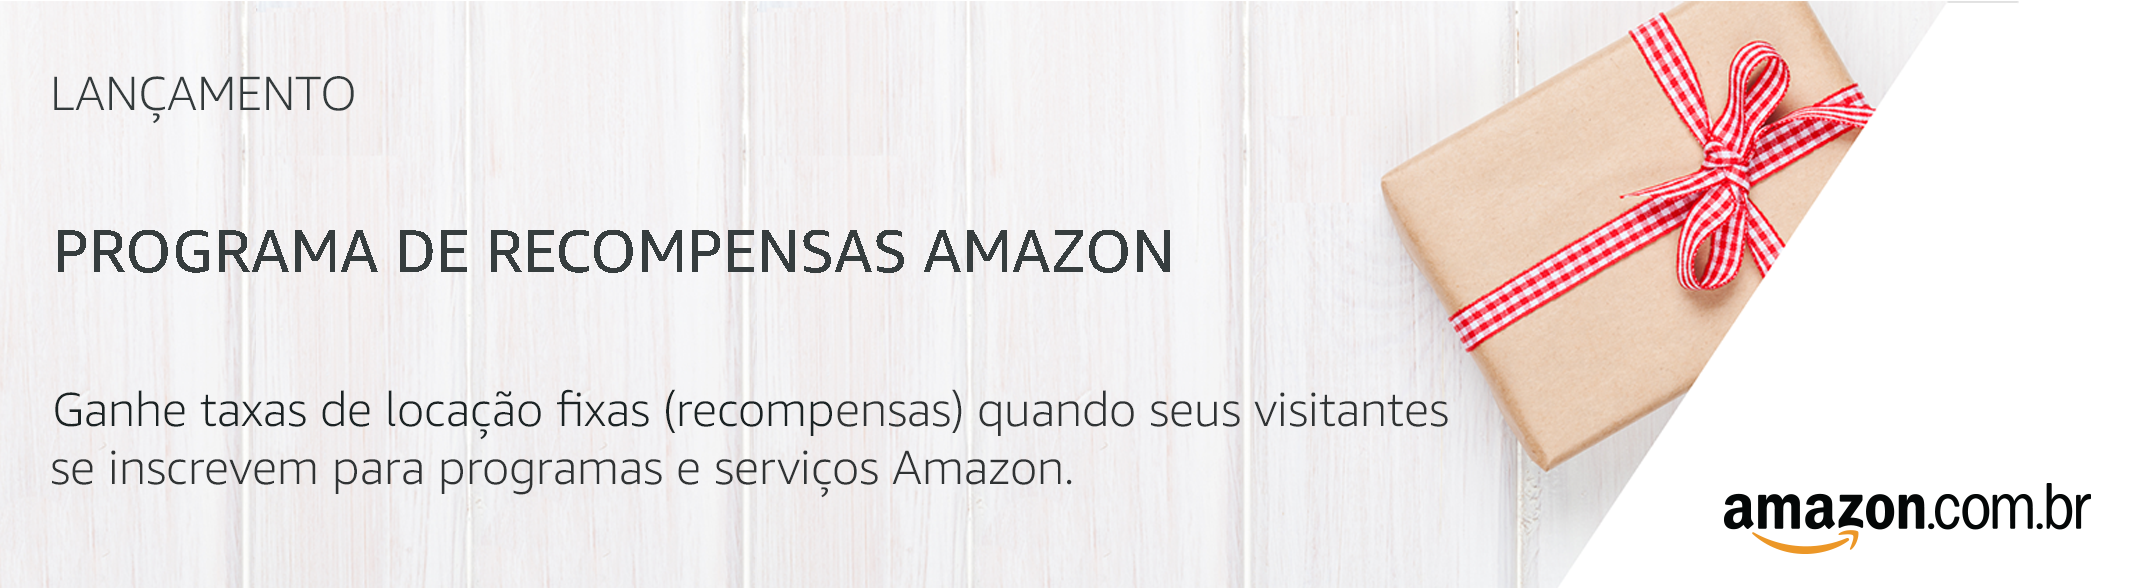 Programa de Recompensas Amazon